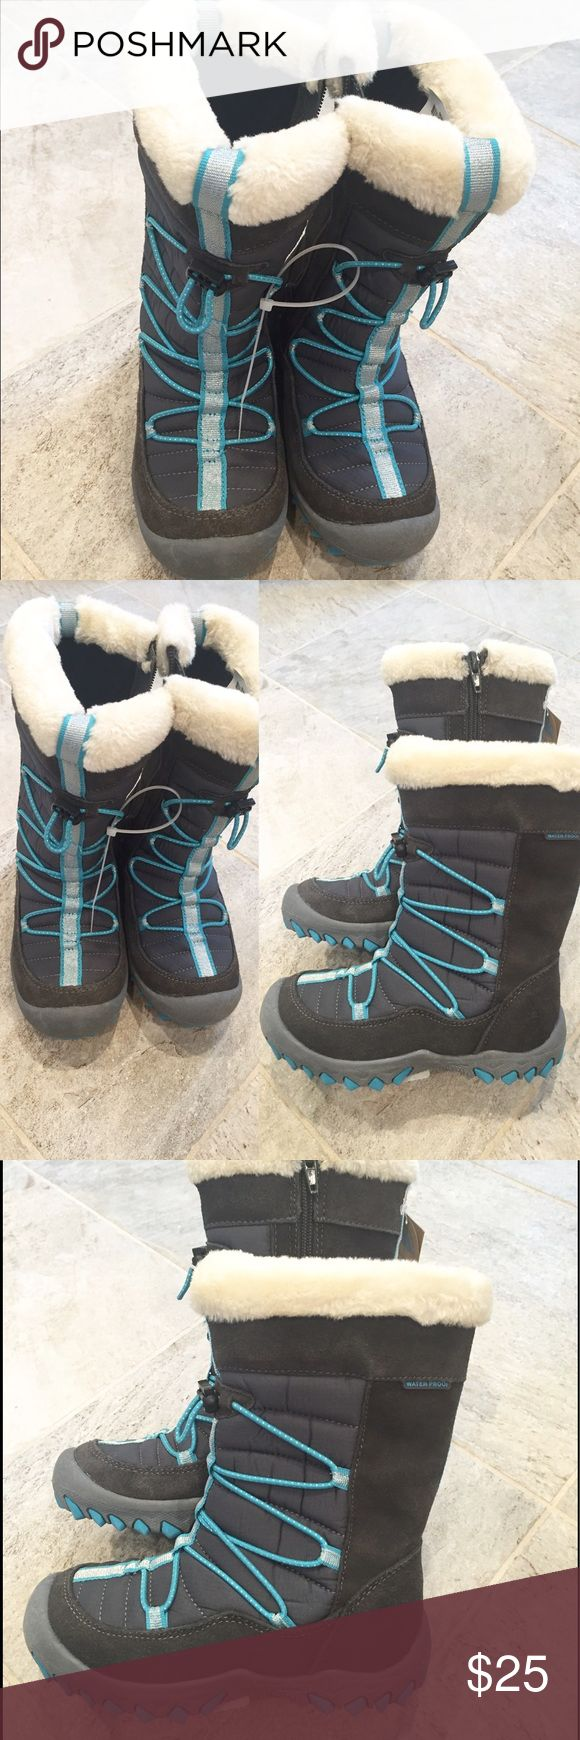 Waterproof winter boots for girls, size 12. Waterproof winter boots. Grey with light blue and silver accents, size 12 girls. Zipper on the side, faux fur trim. New w tags. 🚭Smoke free home. Shoes Boots